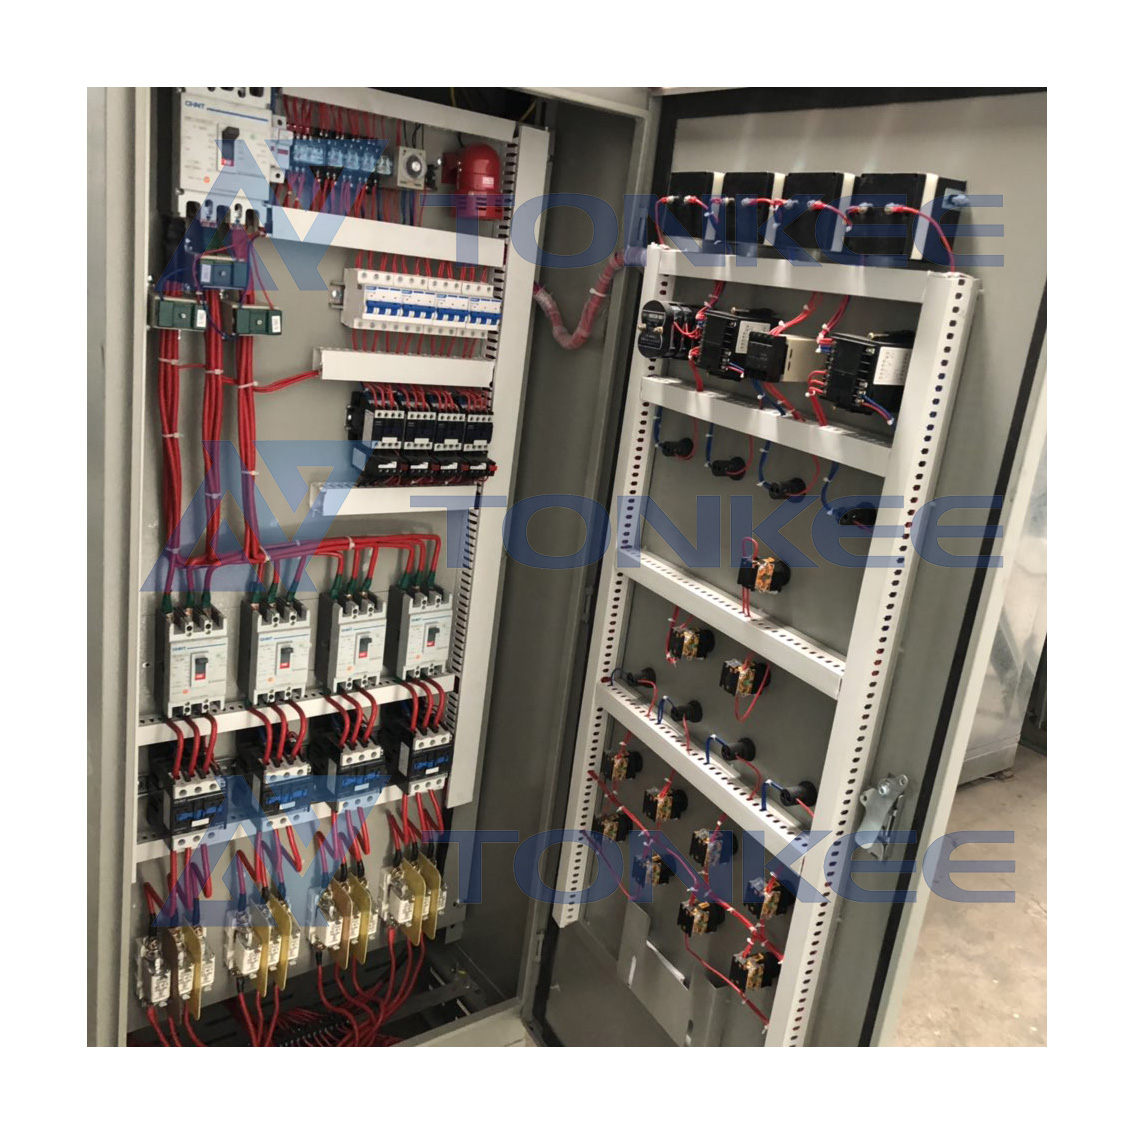 Xl 21 Power Distribution Cabinet Electrical Control Switchboard Panel Board Xl 21 Series 3 Phase Low Voltage Power Distribution Swithgear Box With Switch And Wire Heavy Machinery Parts